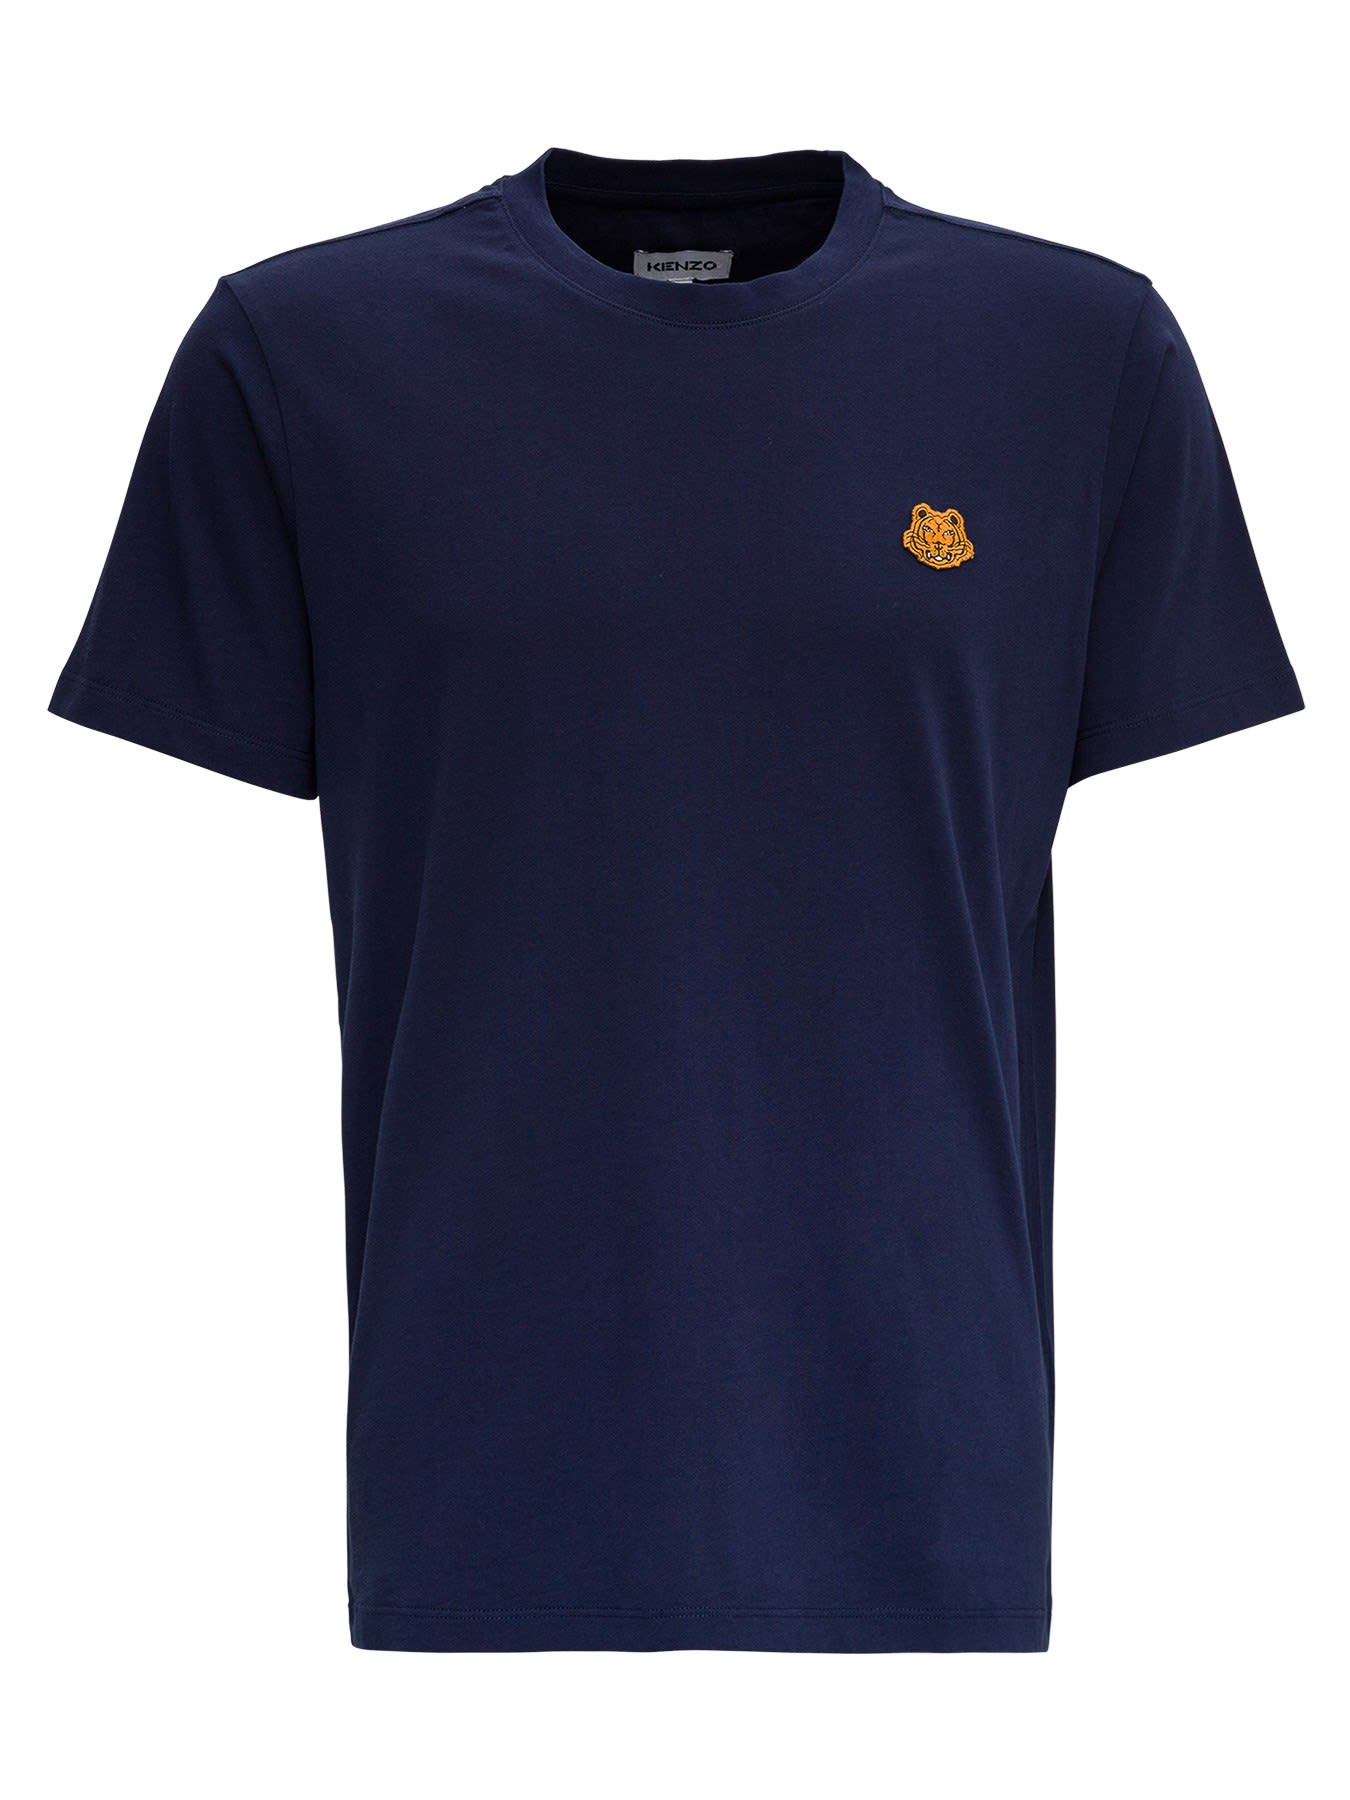 Kenzo COTTON T-SHIRT WITH TIGER PATCH LOGO